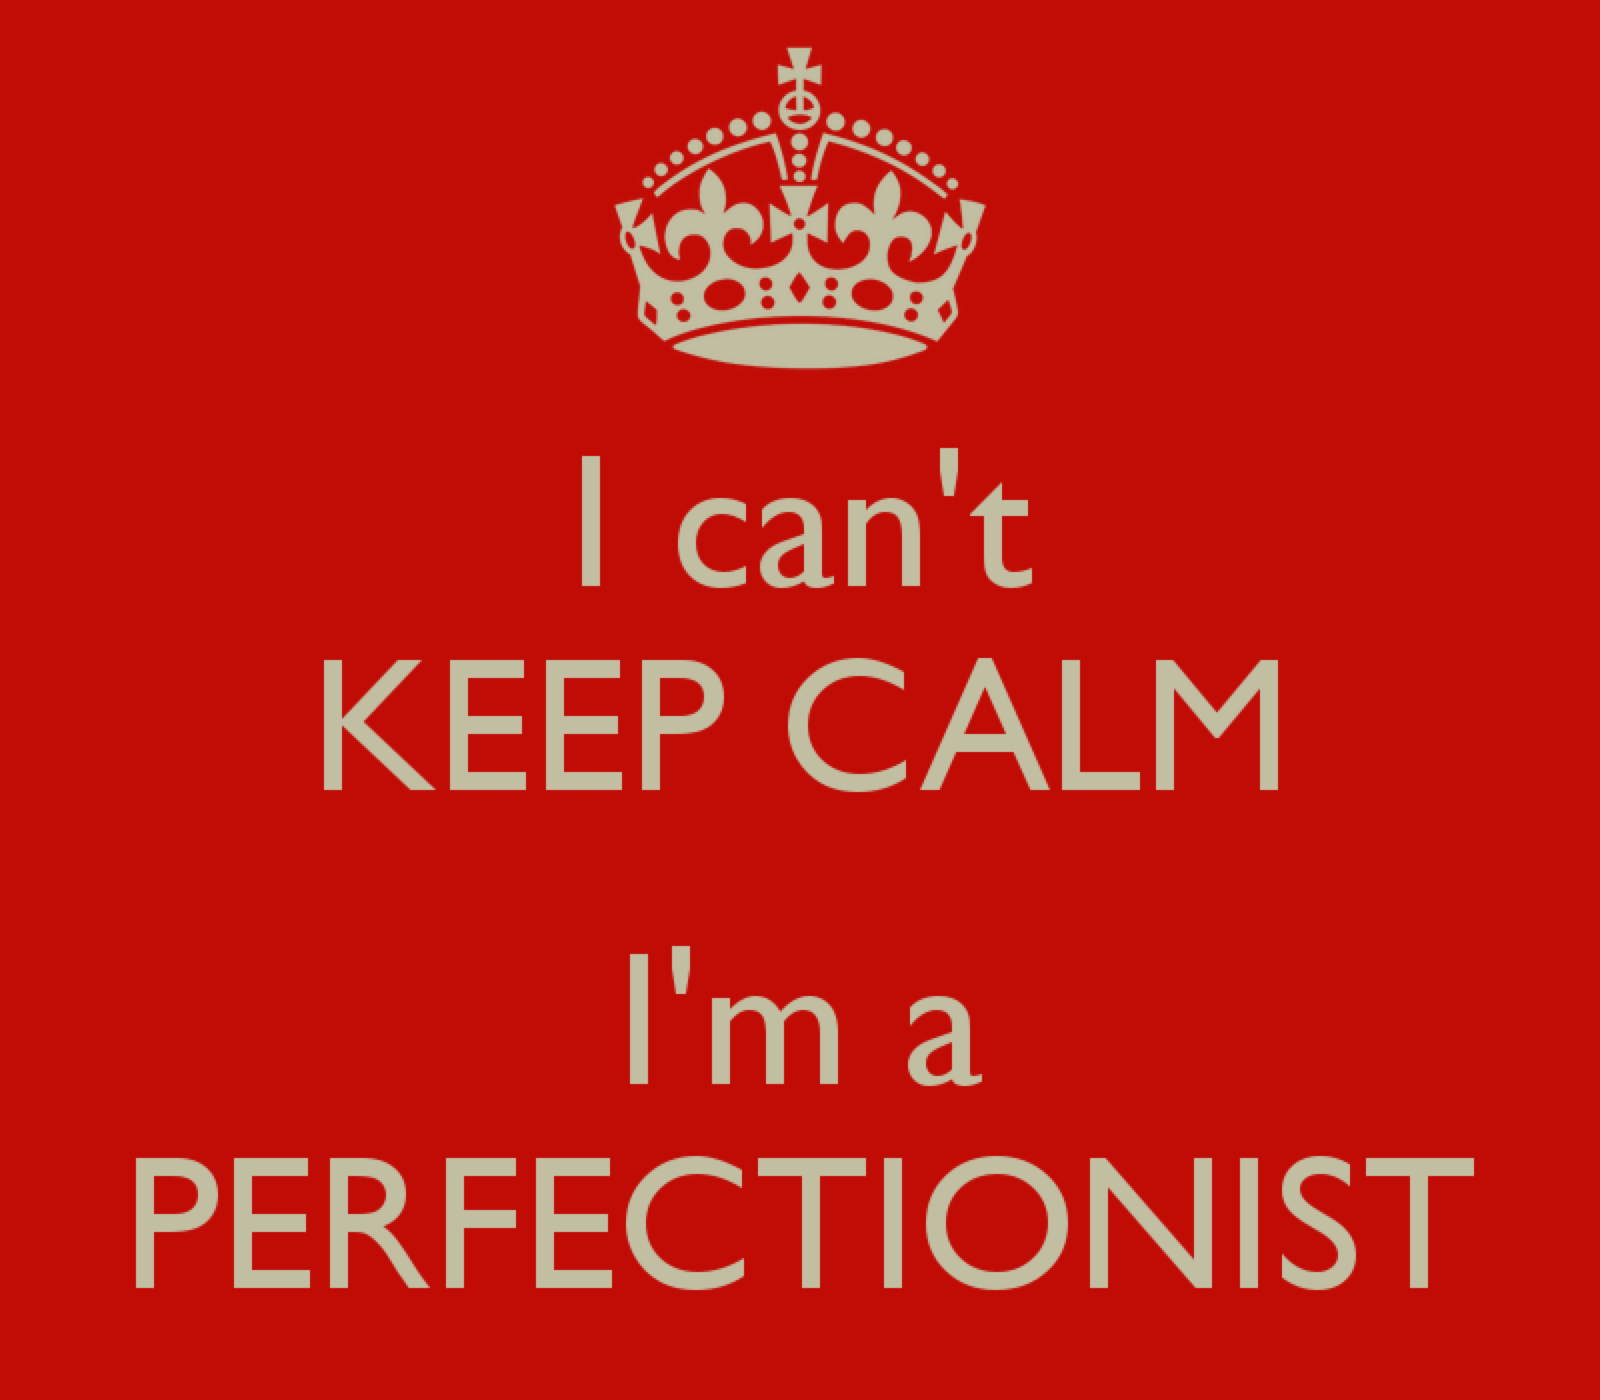 I can't keep calm, I'm a perfectionist!